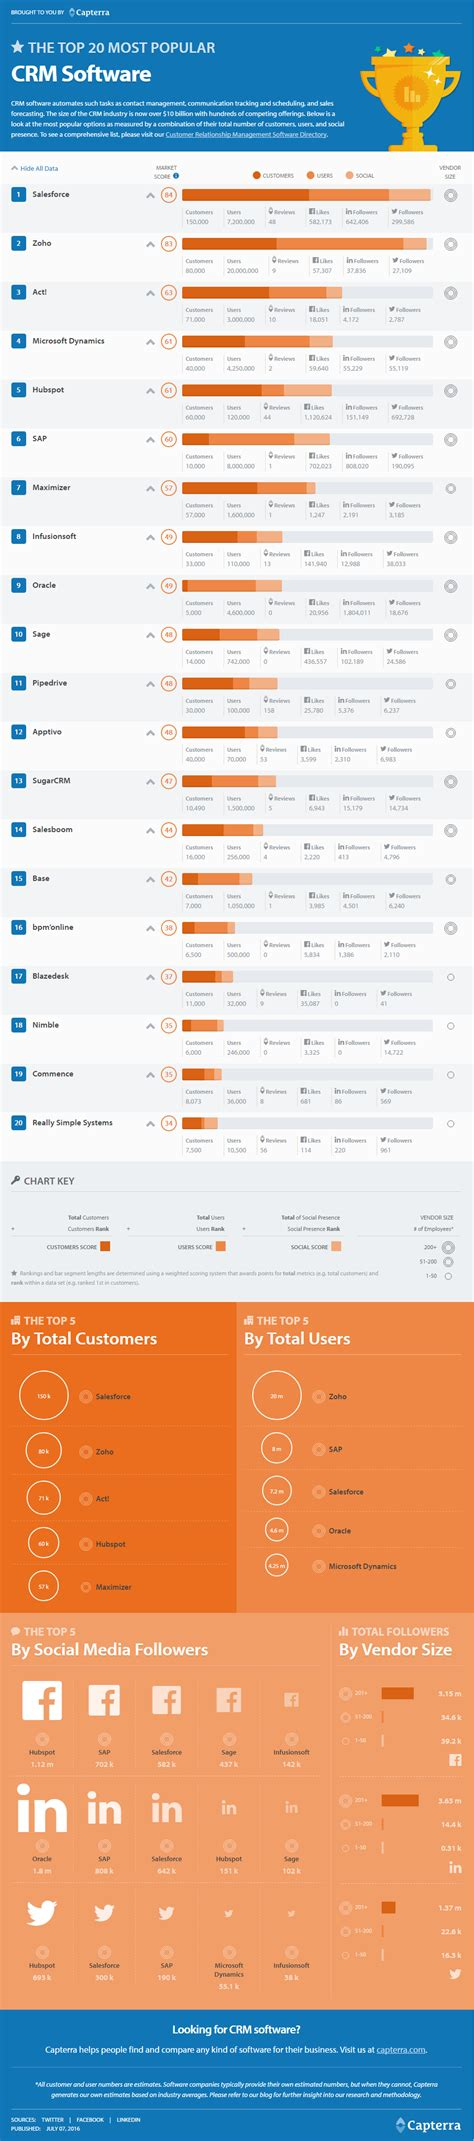 best crm top crm software 20 most popular platforms infographic